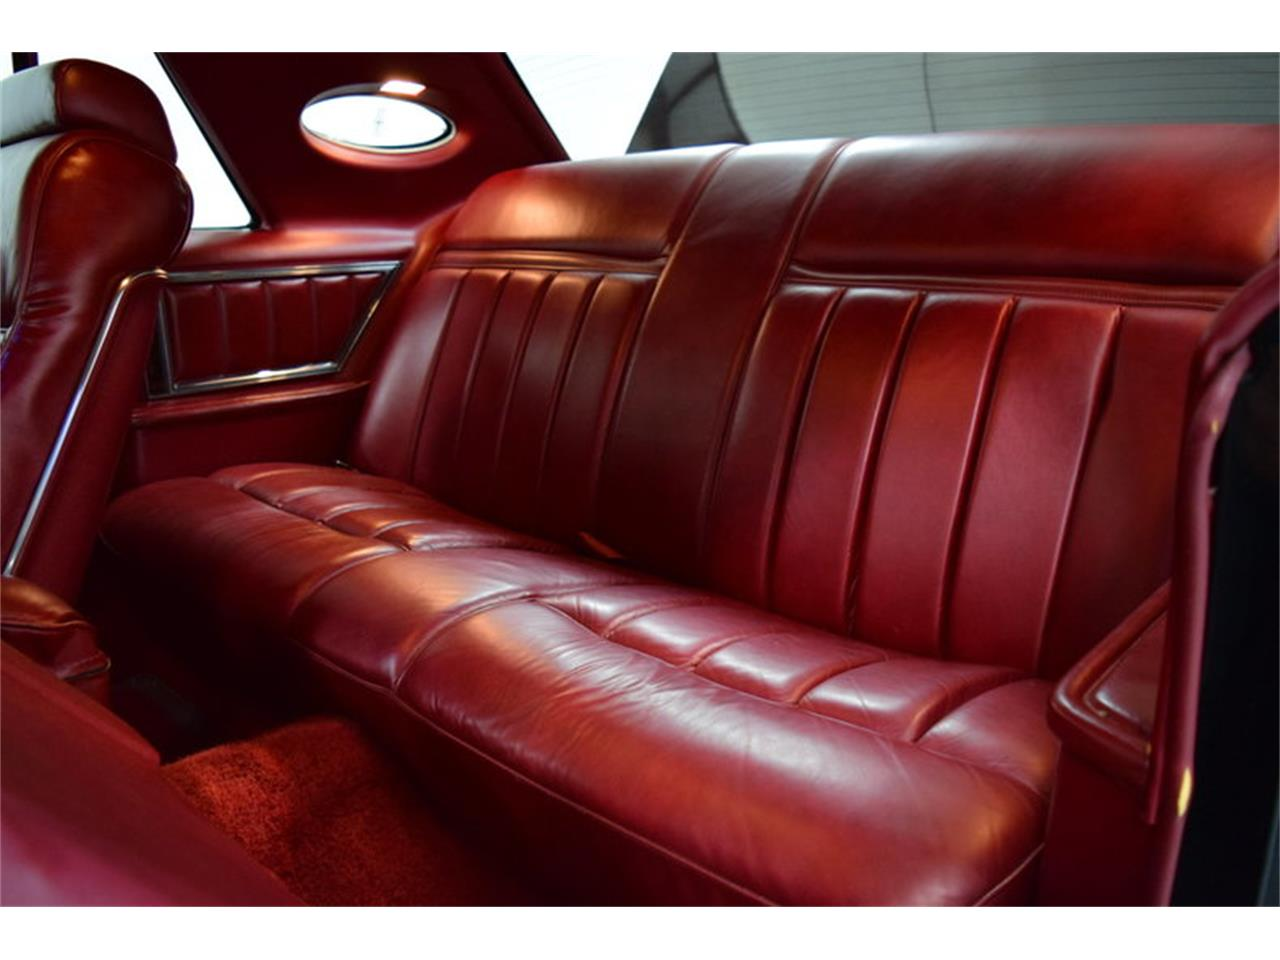 Large Picture of 1978 Continental Mark V located in North Carolina - $11,995.00 - MLKC